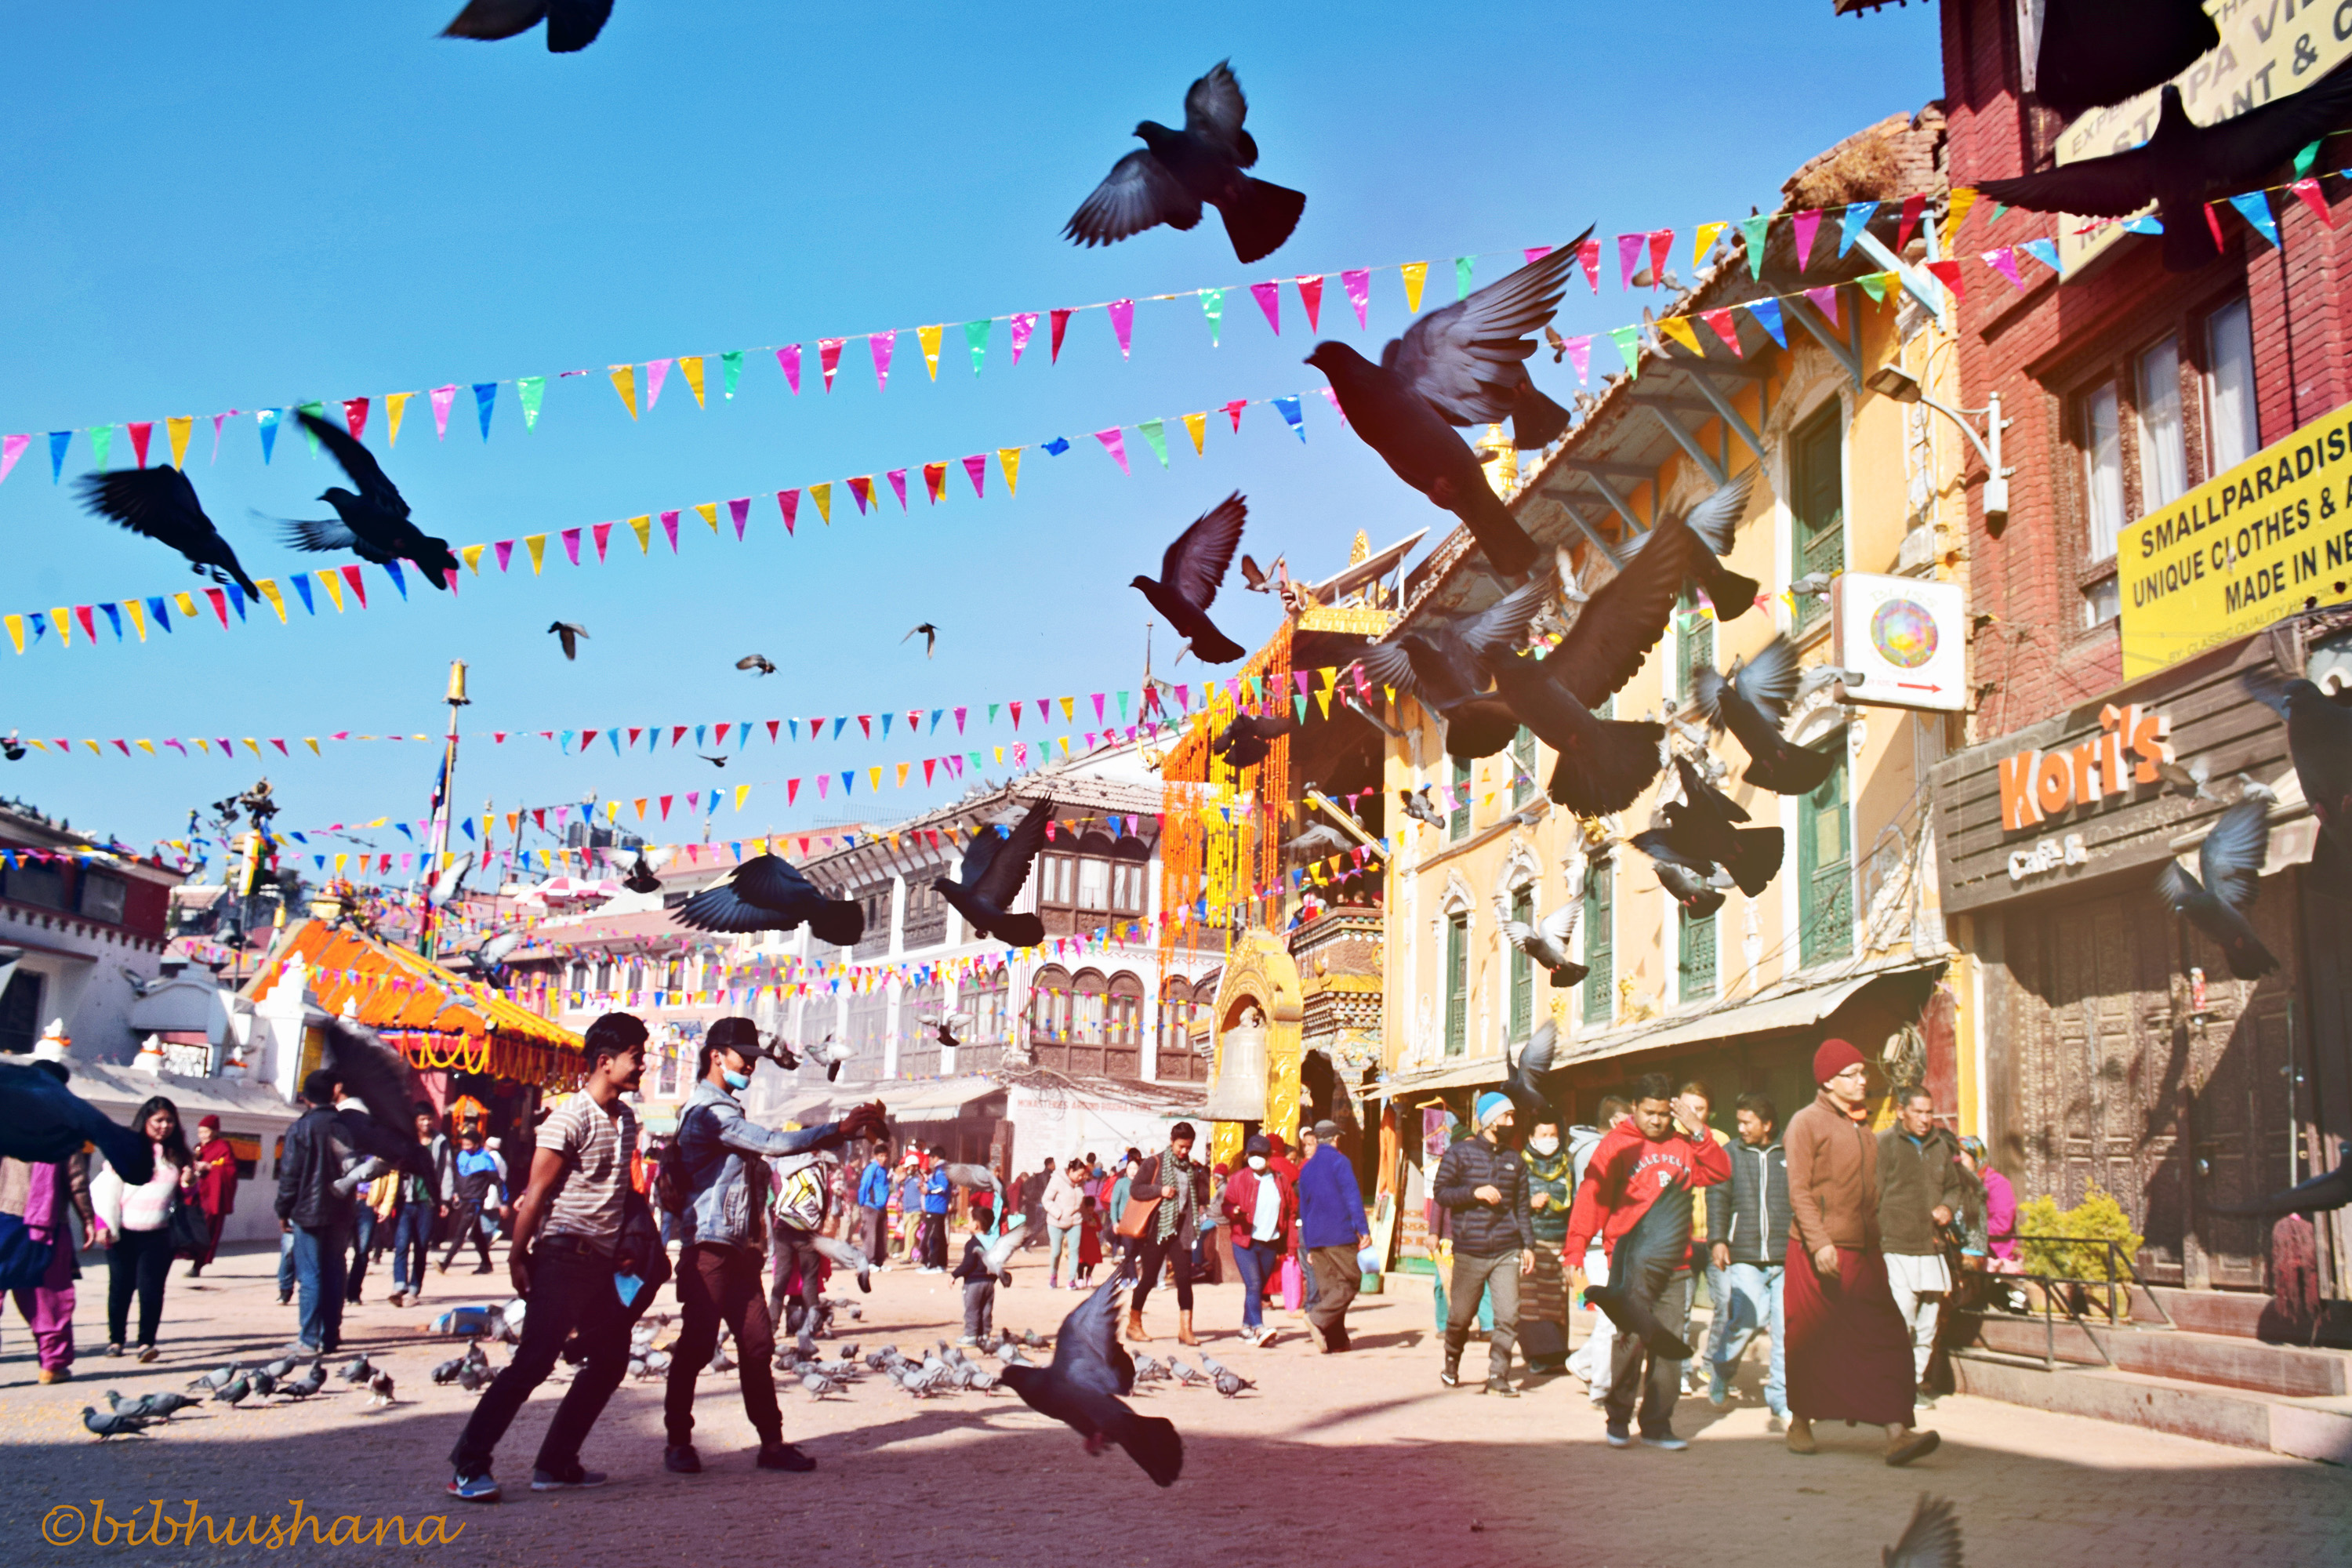 Image depicts the streets of Kathmandu, Nepal. People walk in various directions as birds fly overhead. Pigeons, strollers, and passersby surround Boudhanath Stupa in the morning.